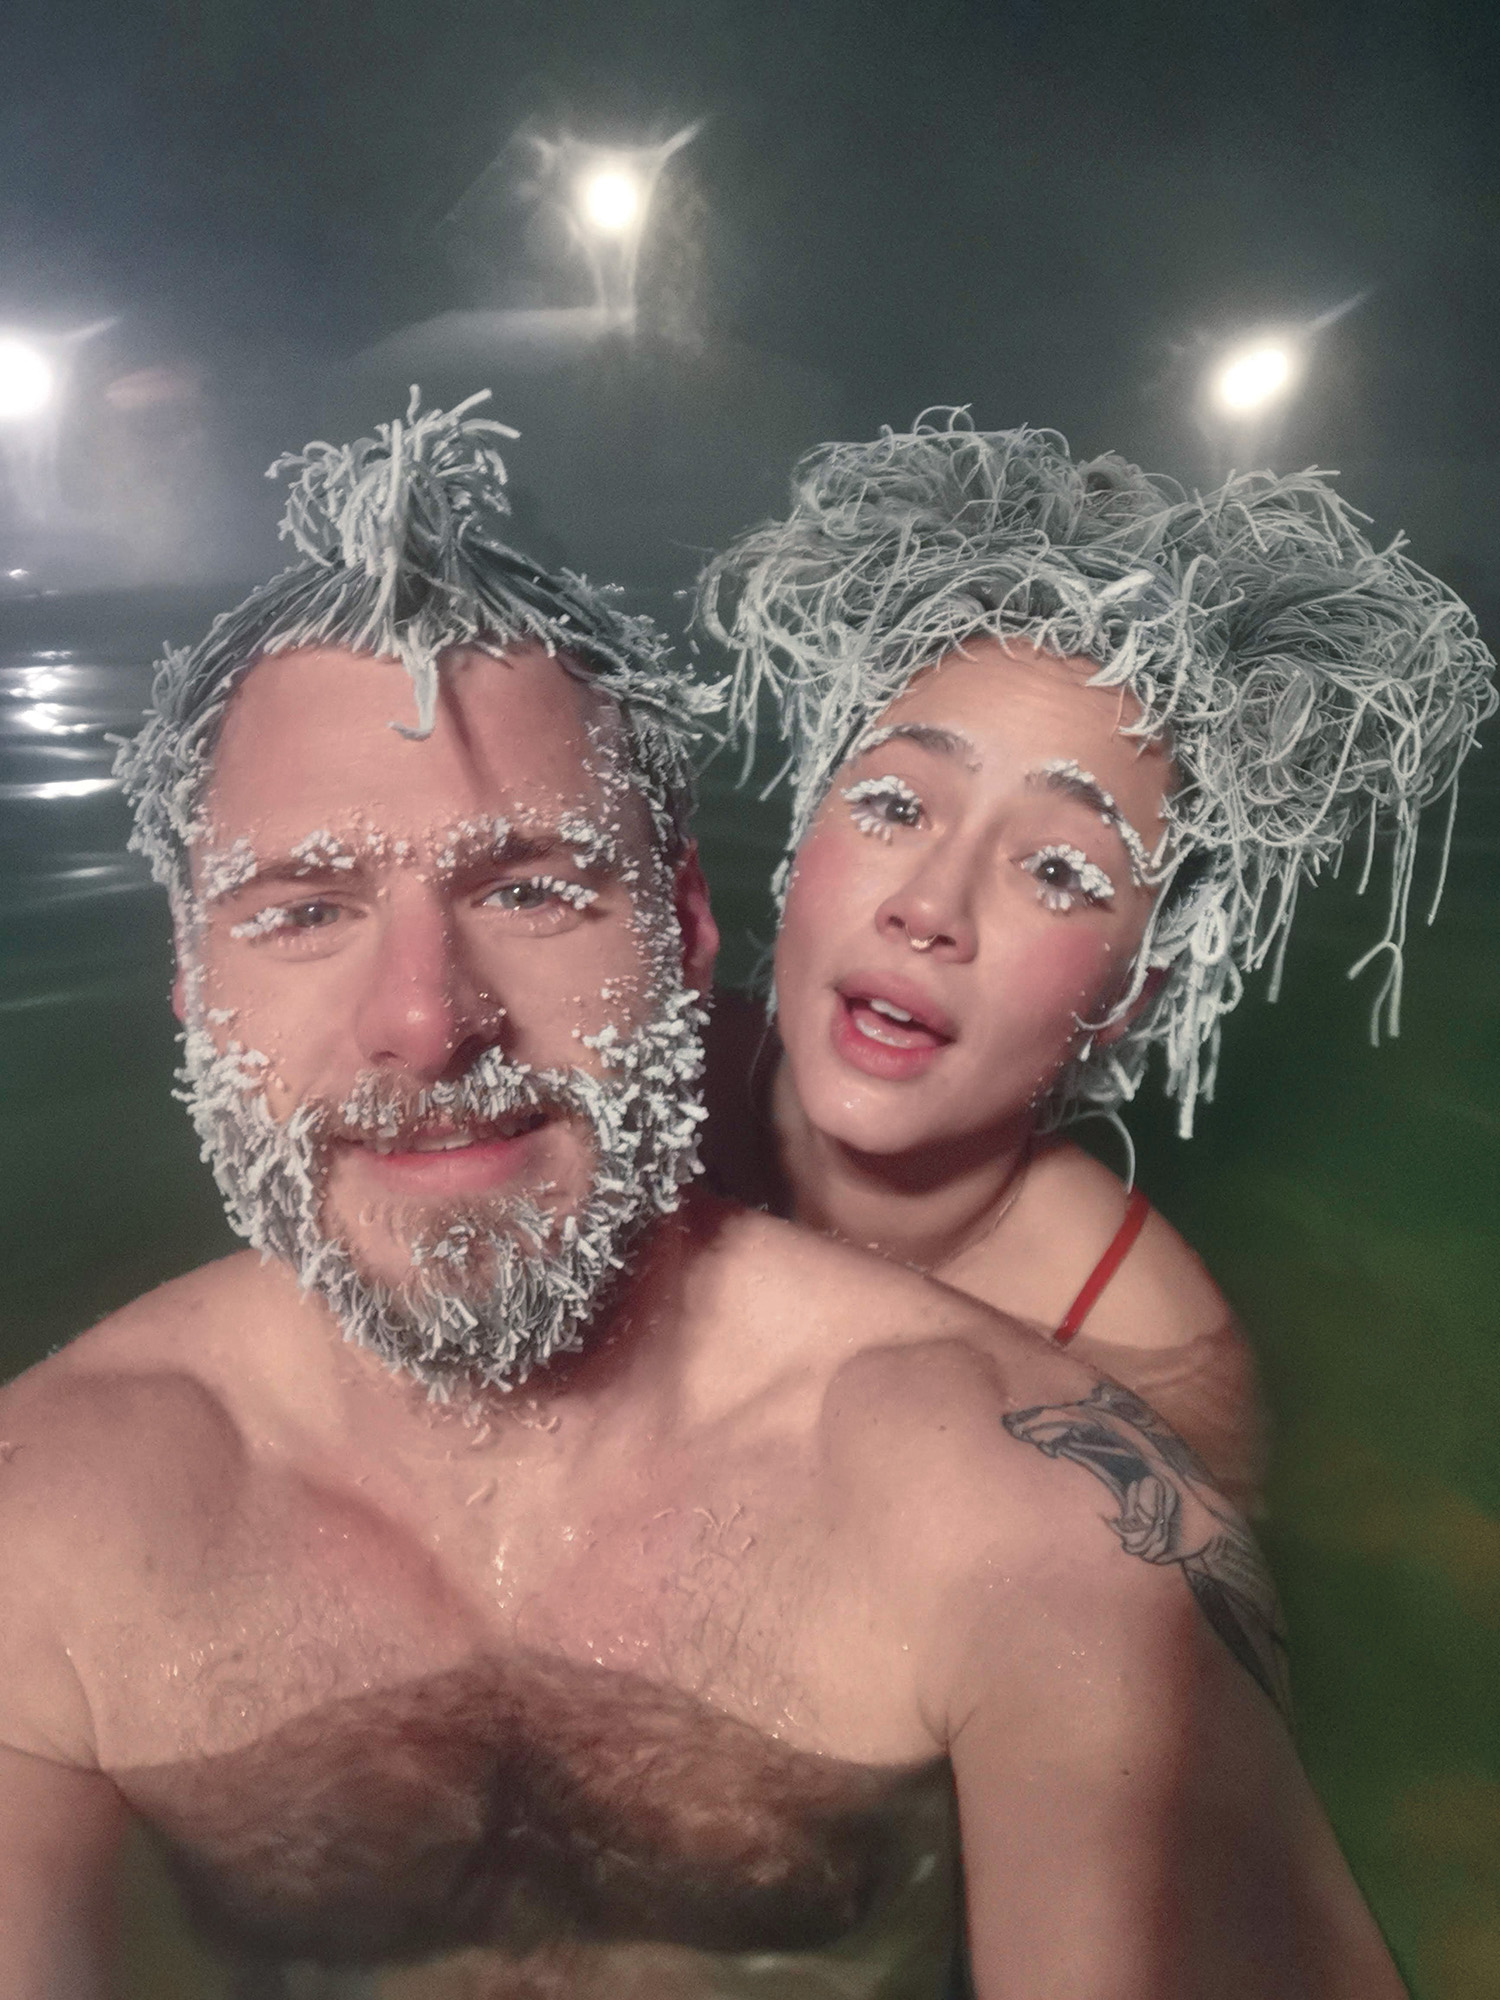 International hair freezing festival in Whitehorse, Yukon